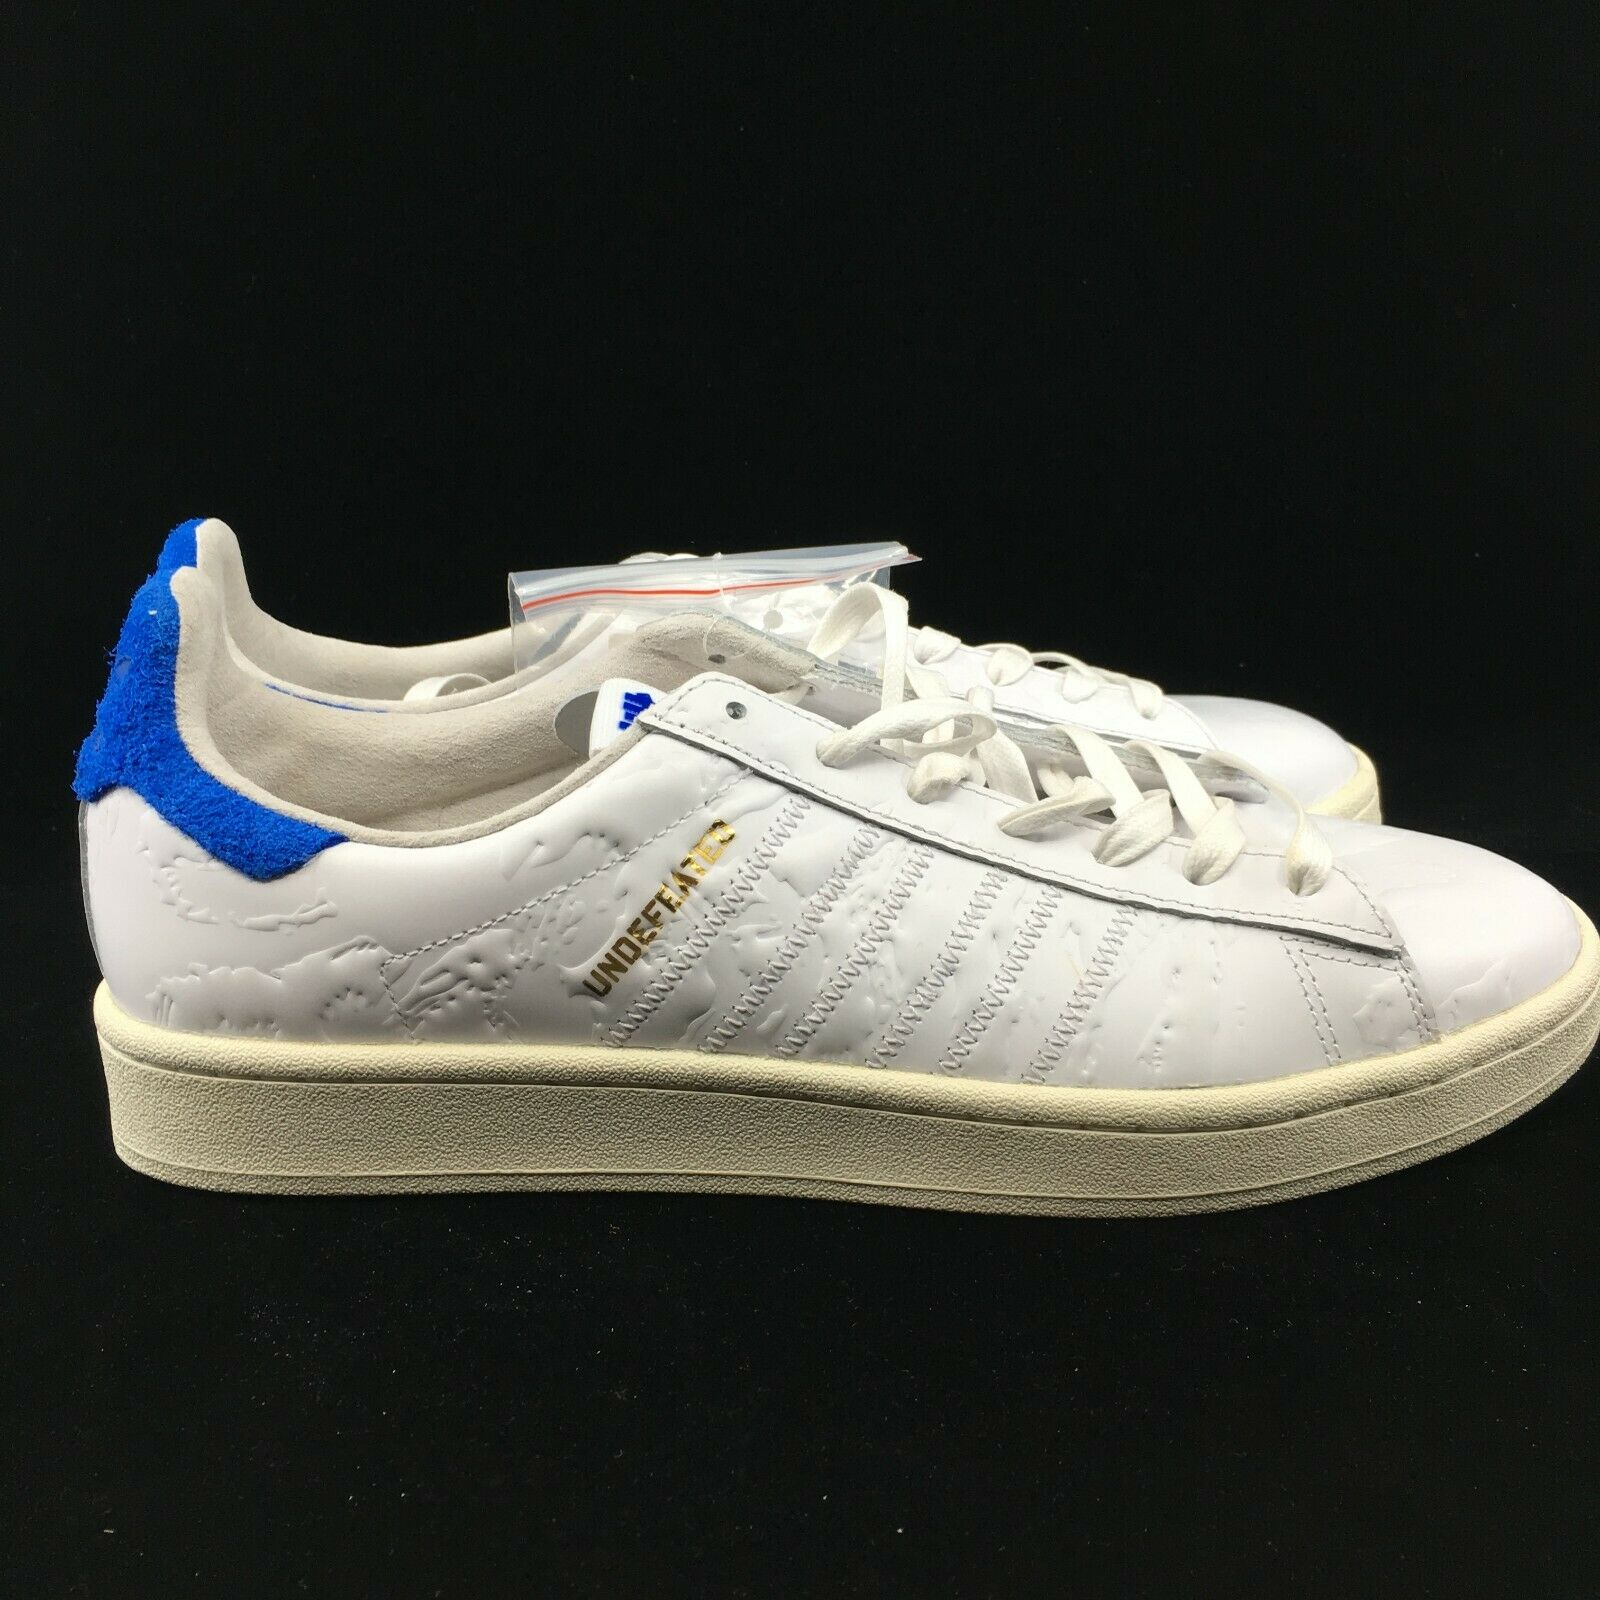 Adidas Consortium Colette Undftd Campus S.E. BY2595 White bluee Undefeated gold